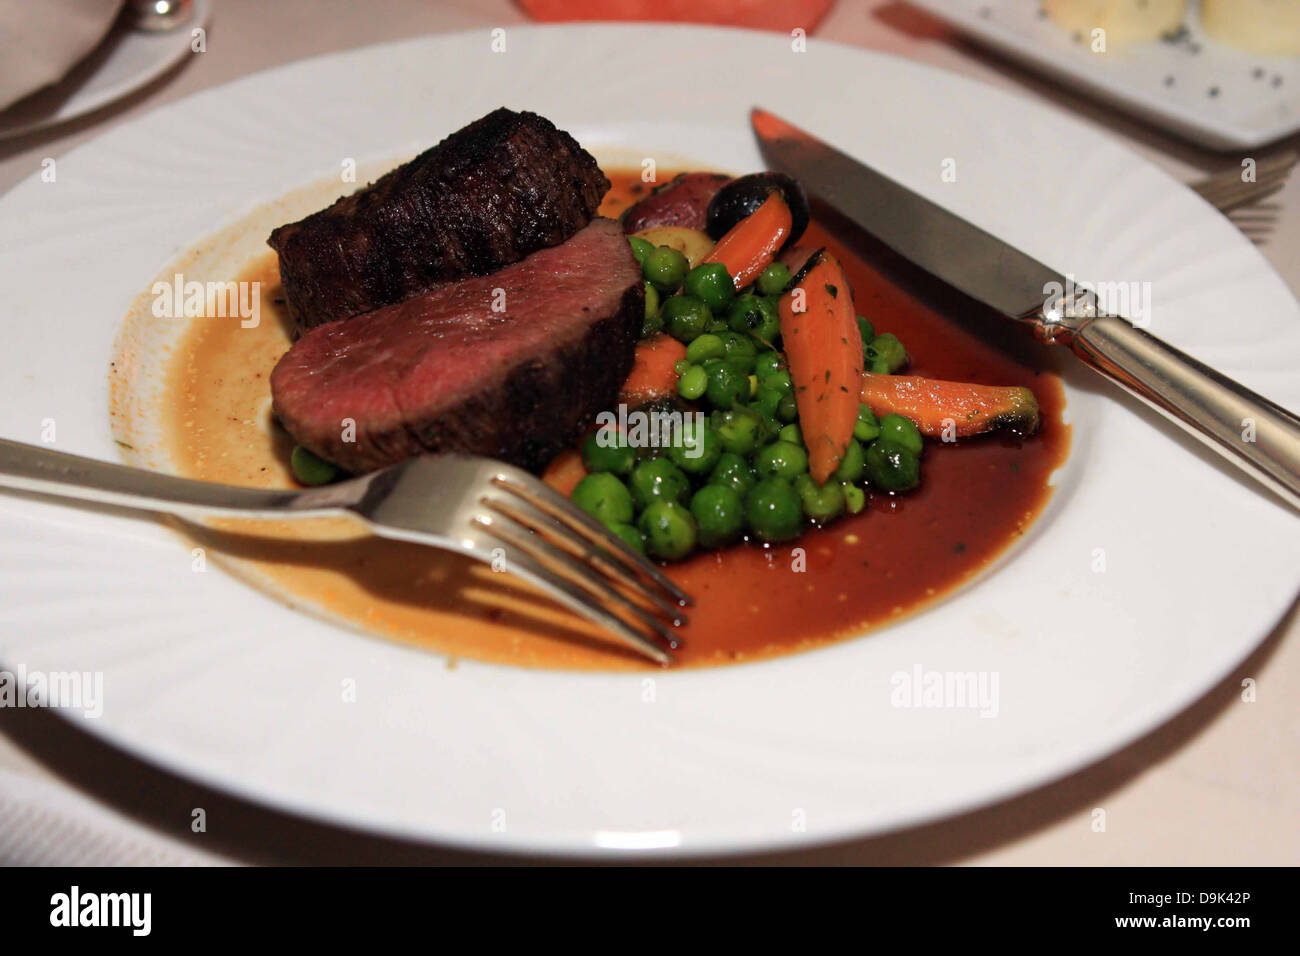 dinner supper meal food eat steak meat rare fresh peas carrots knife fork plate - Stock Image